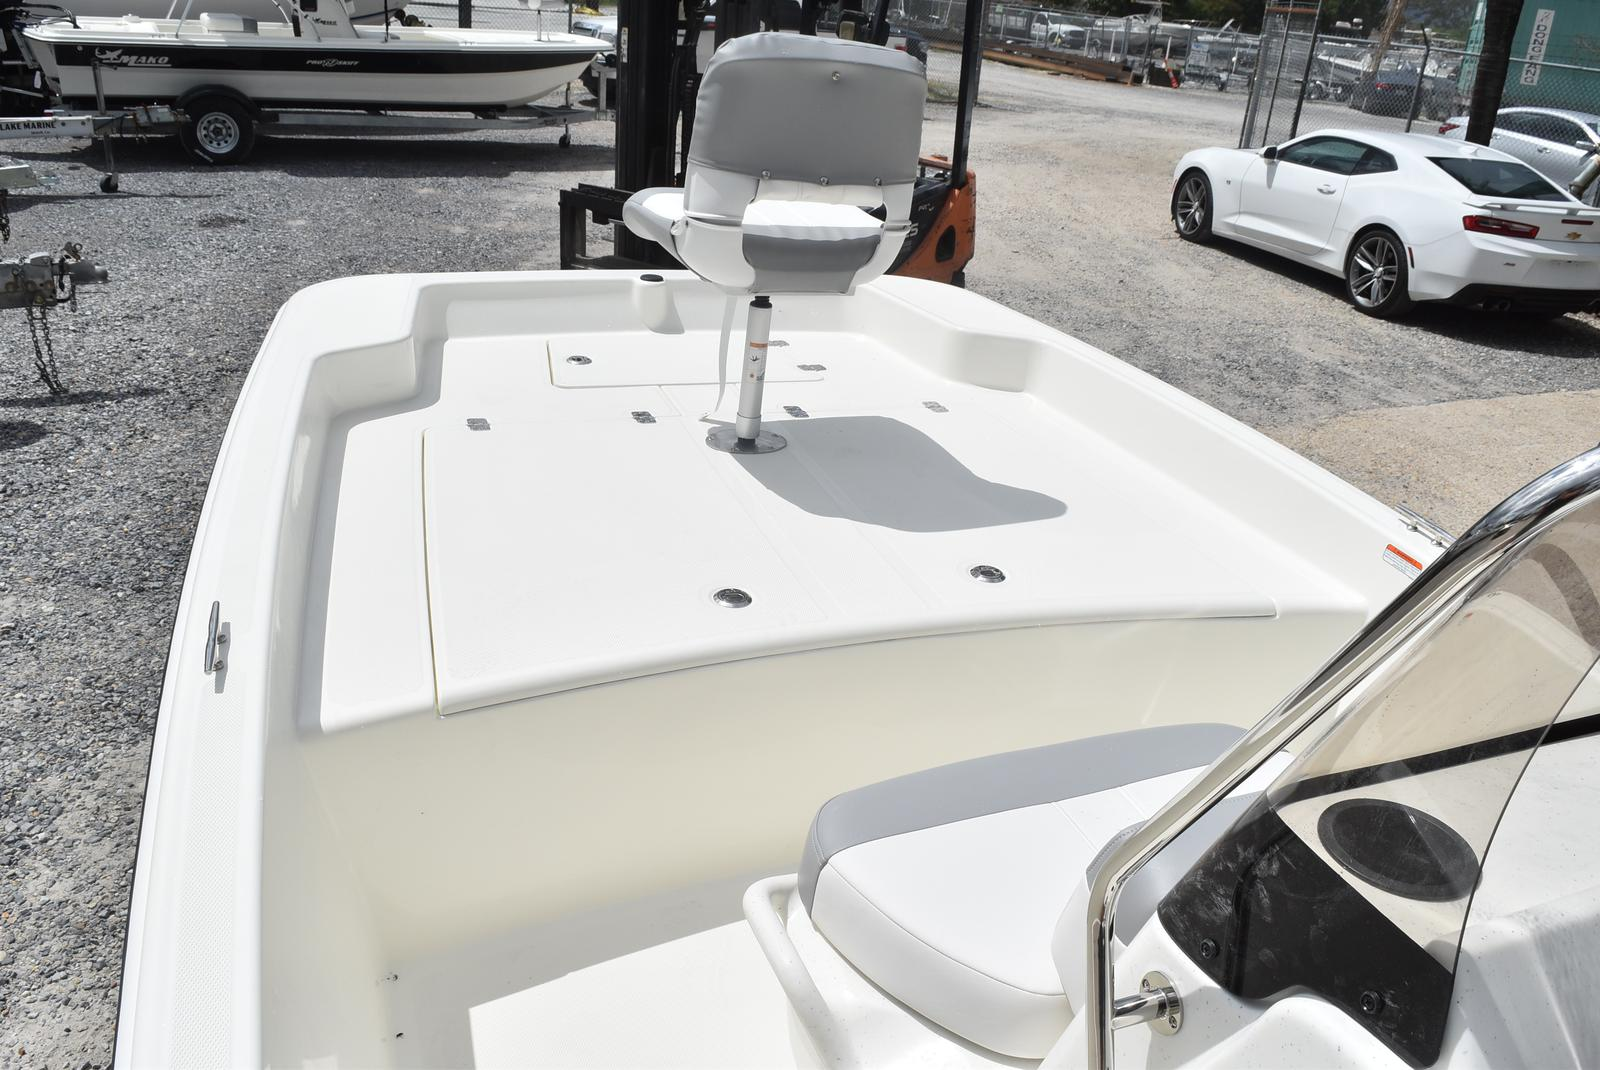 2020 Mako boat for sale, model of the boat is Pro Skiff 17, 75 ELPT & Image # 407 of 702